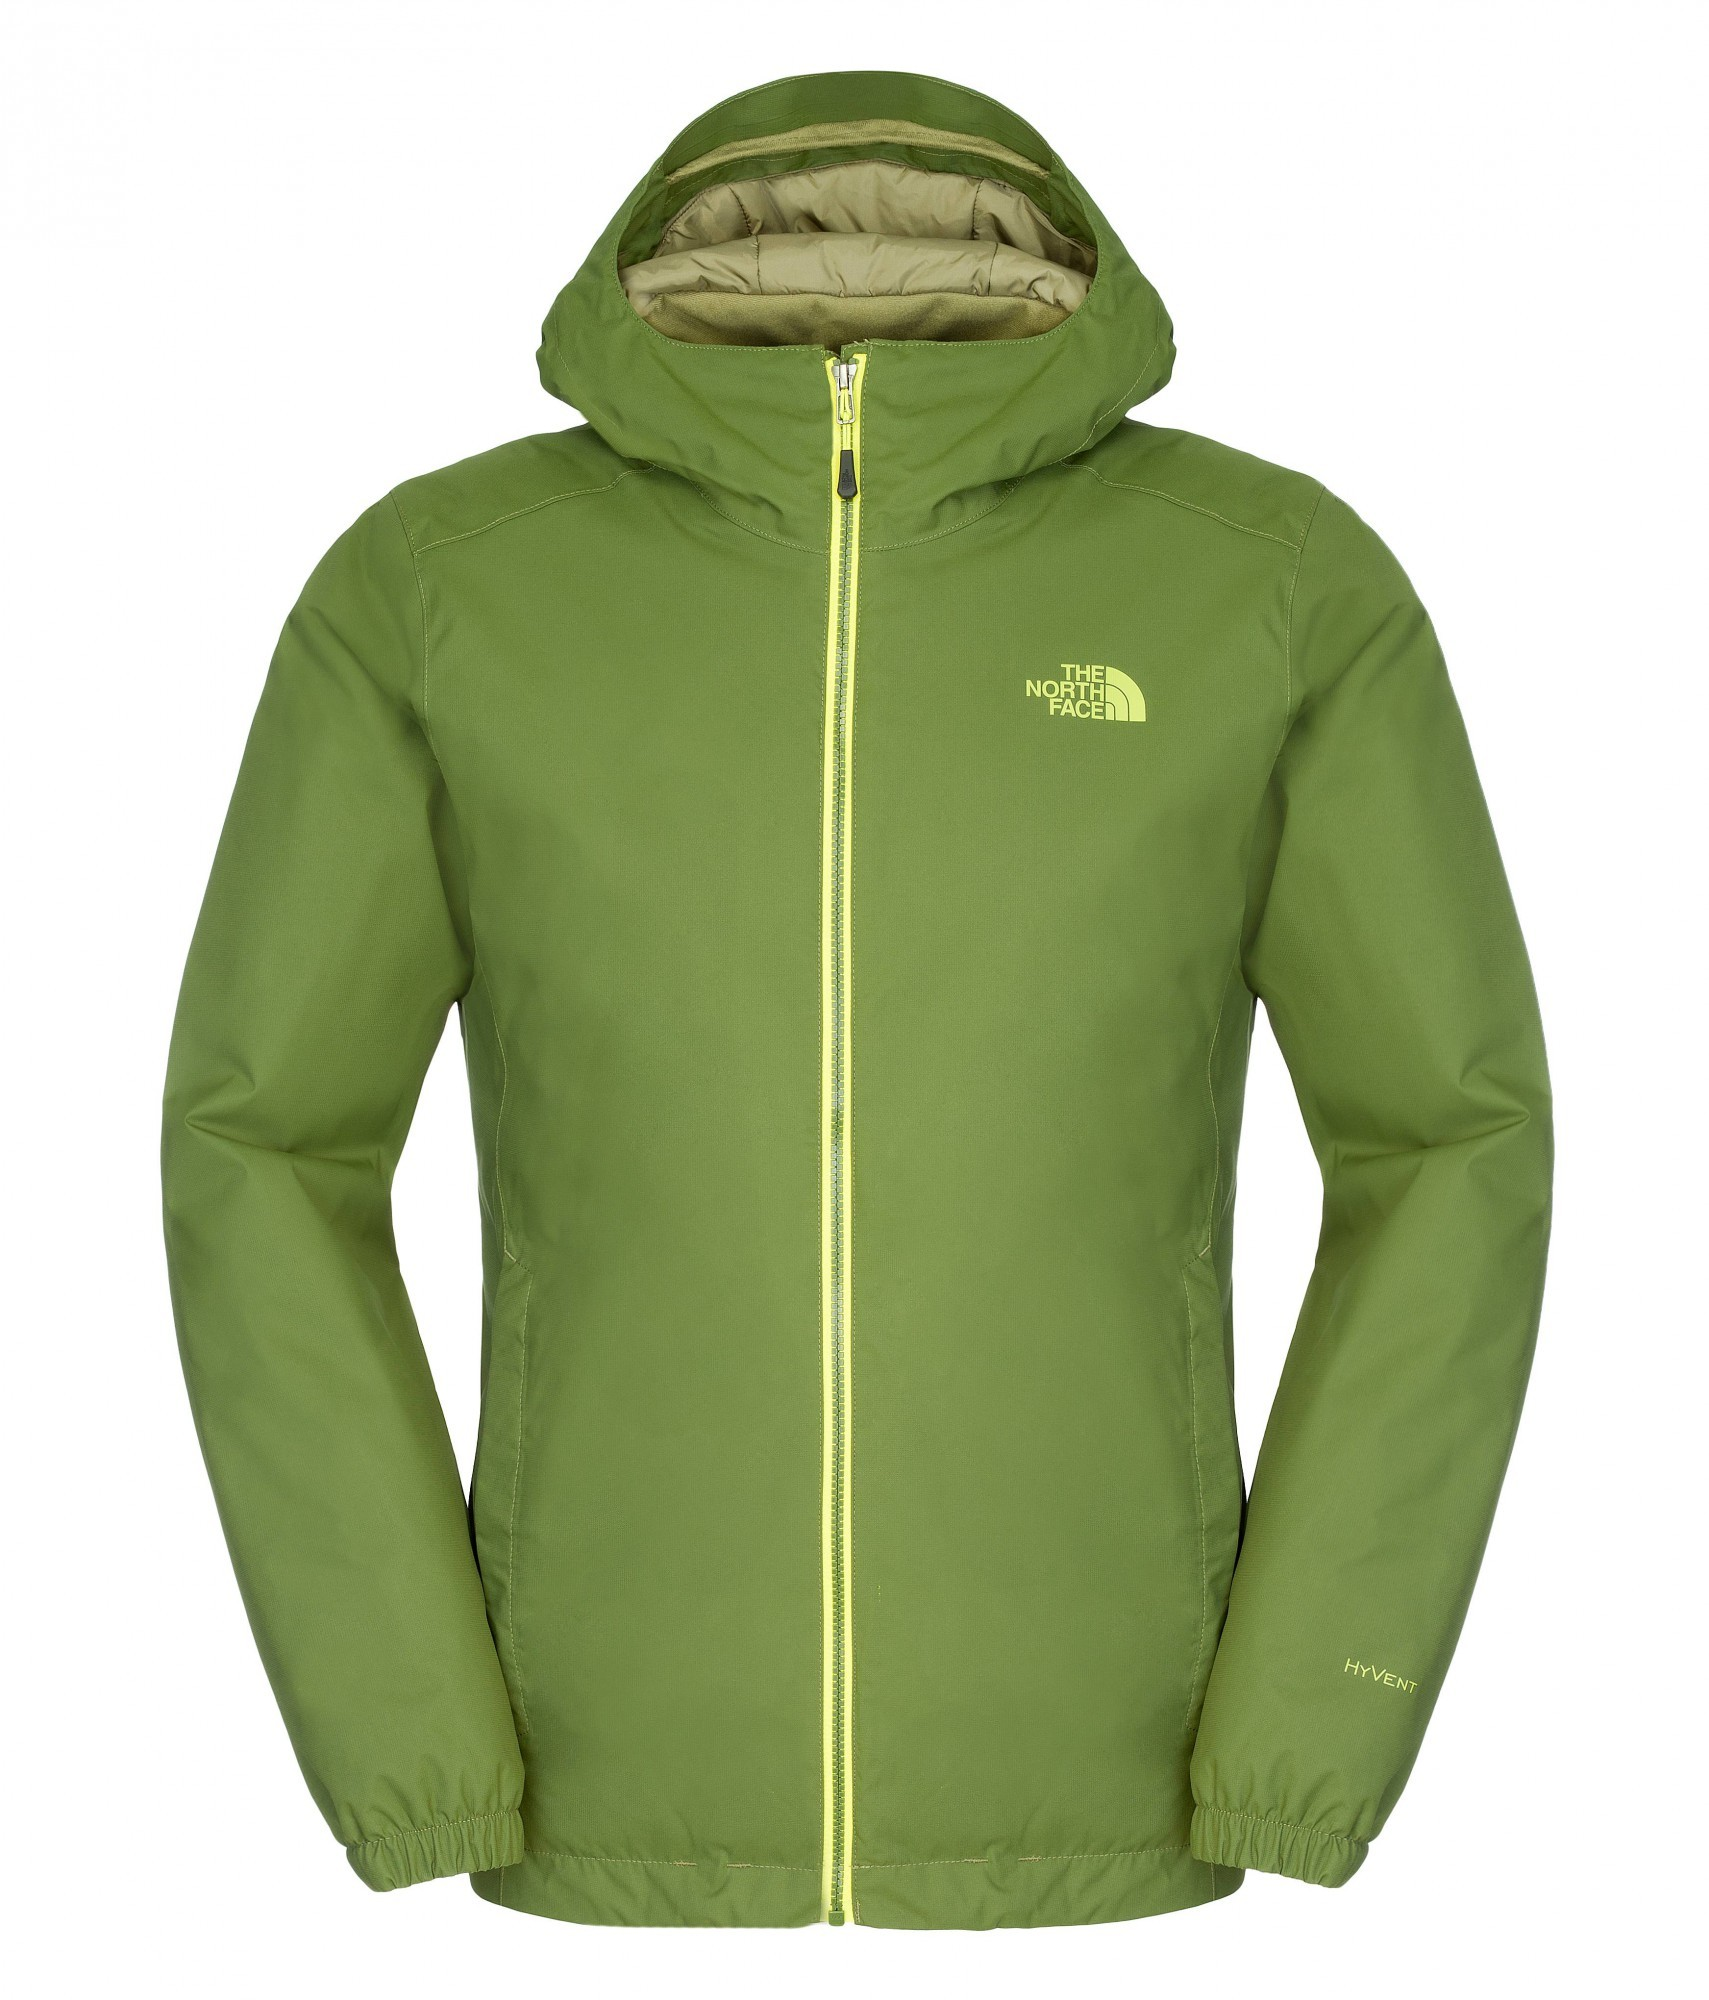 The Quest Sport Giacca Face Insulated North Uomo Latini wwO7qfgCR